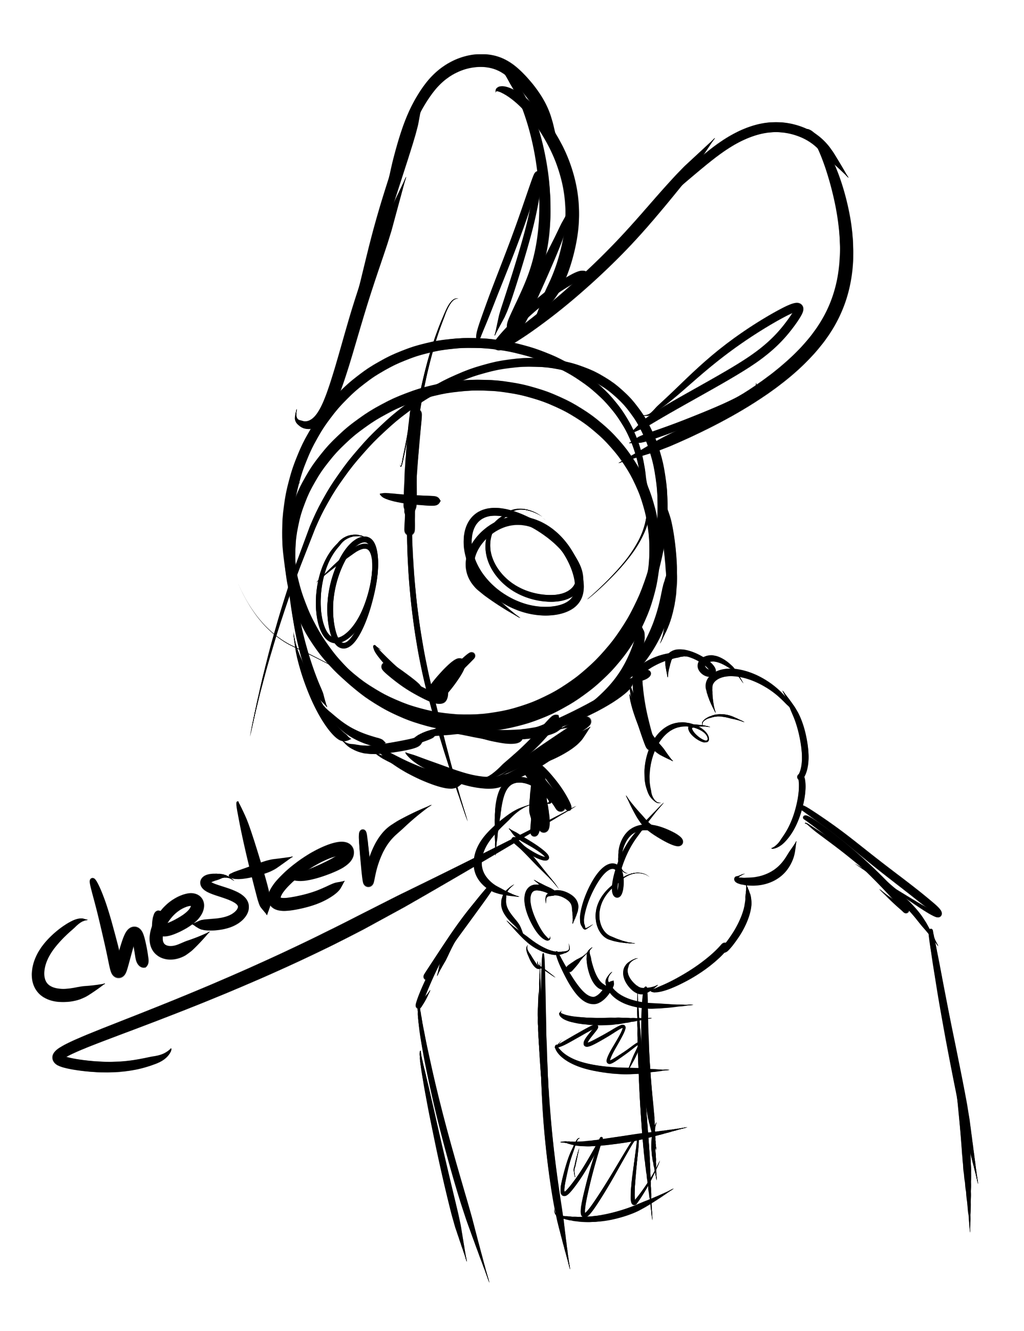 Most recent image: Chester